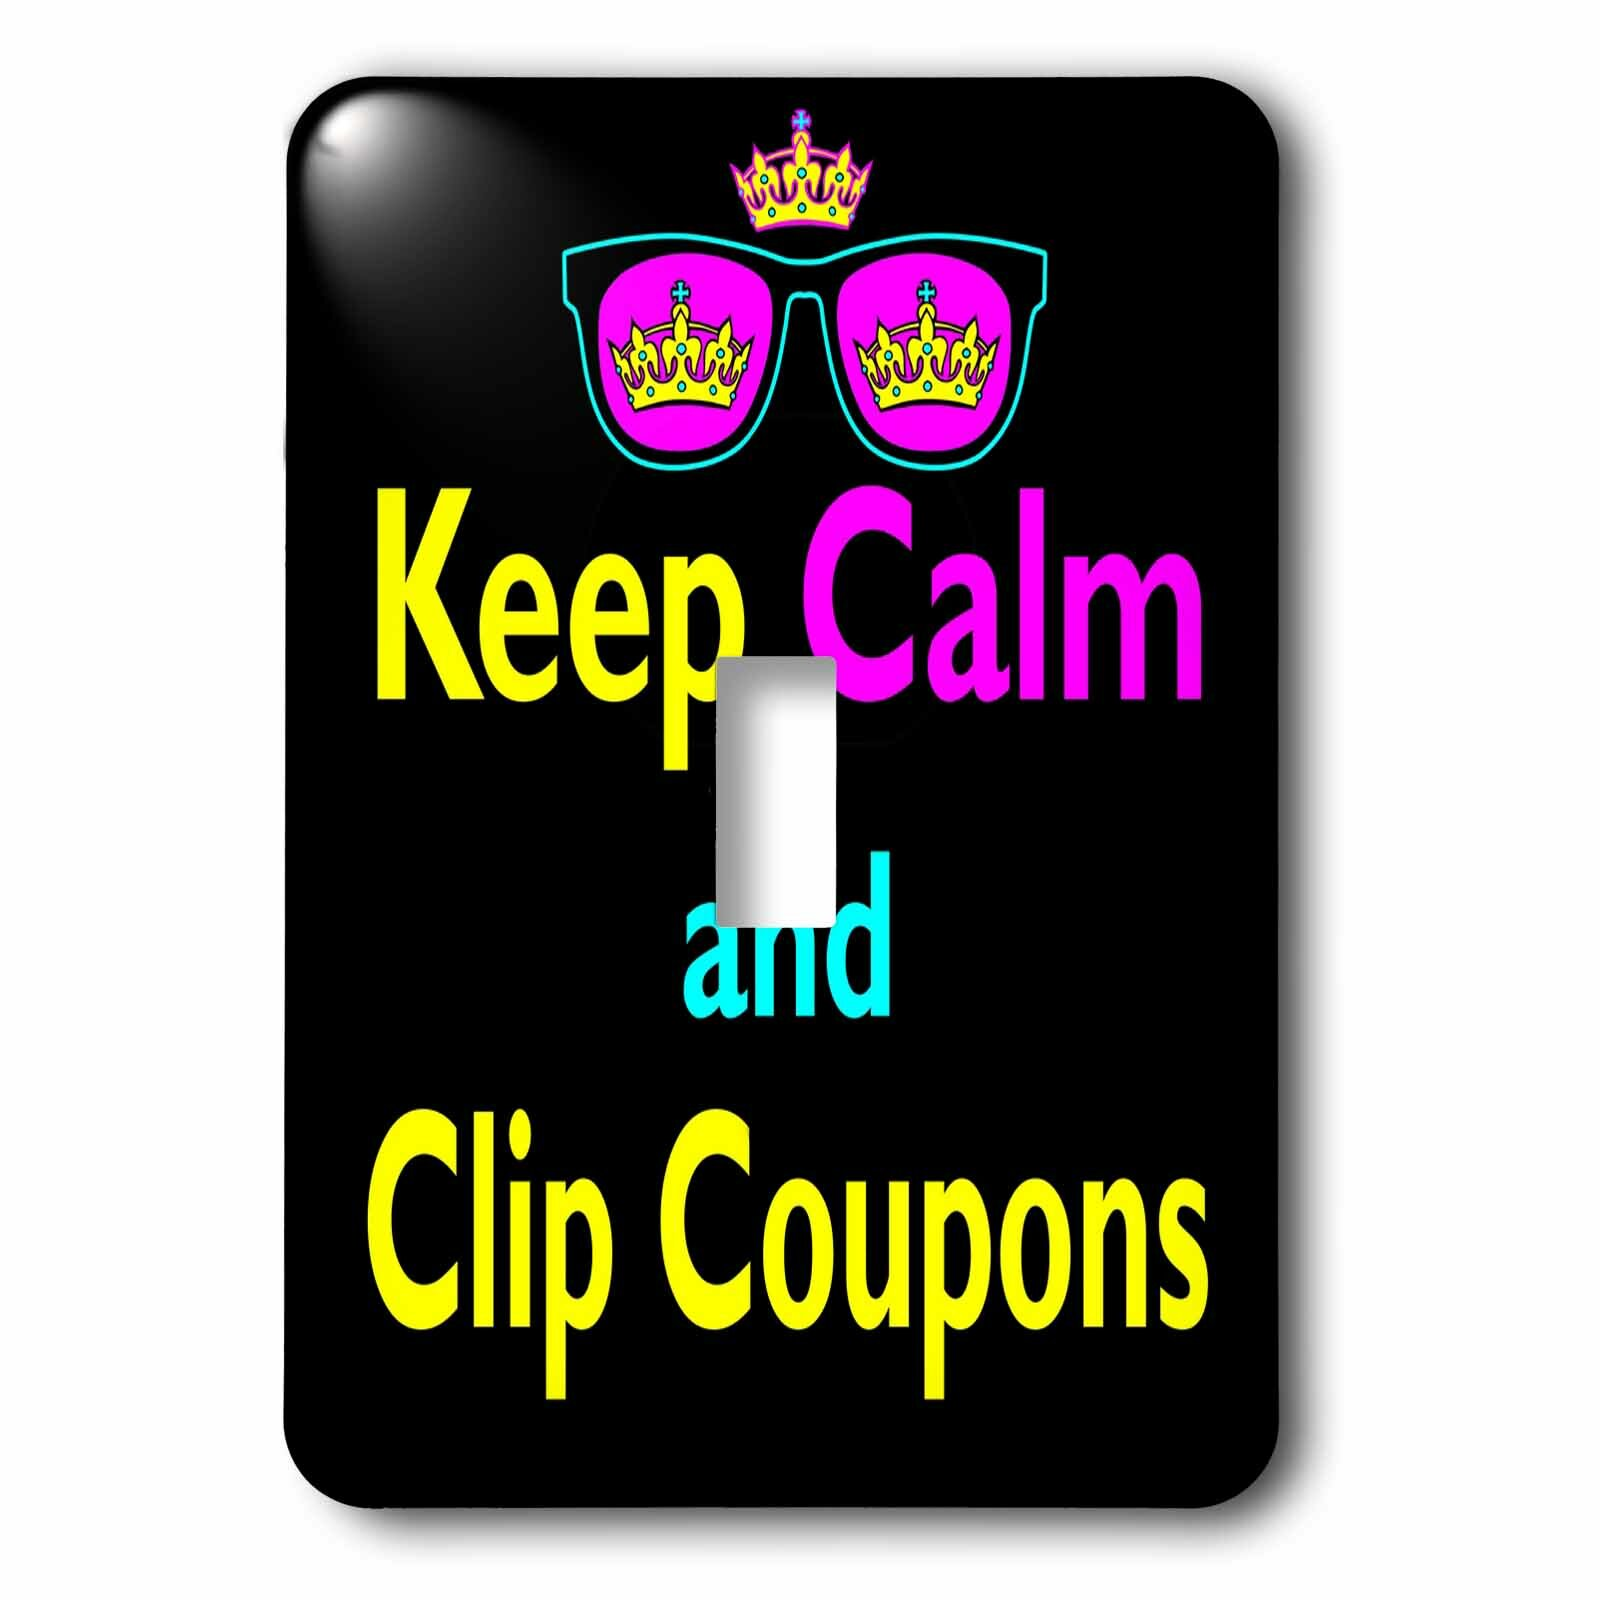 3drose Keep Calm And Clip Coupons 1 Gang Toggle Light Switch Wall Plate Wayfair